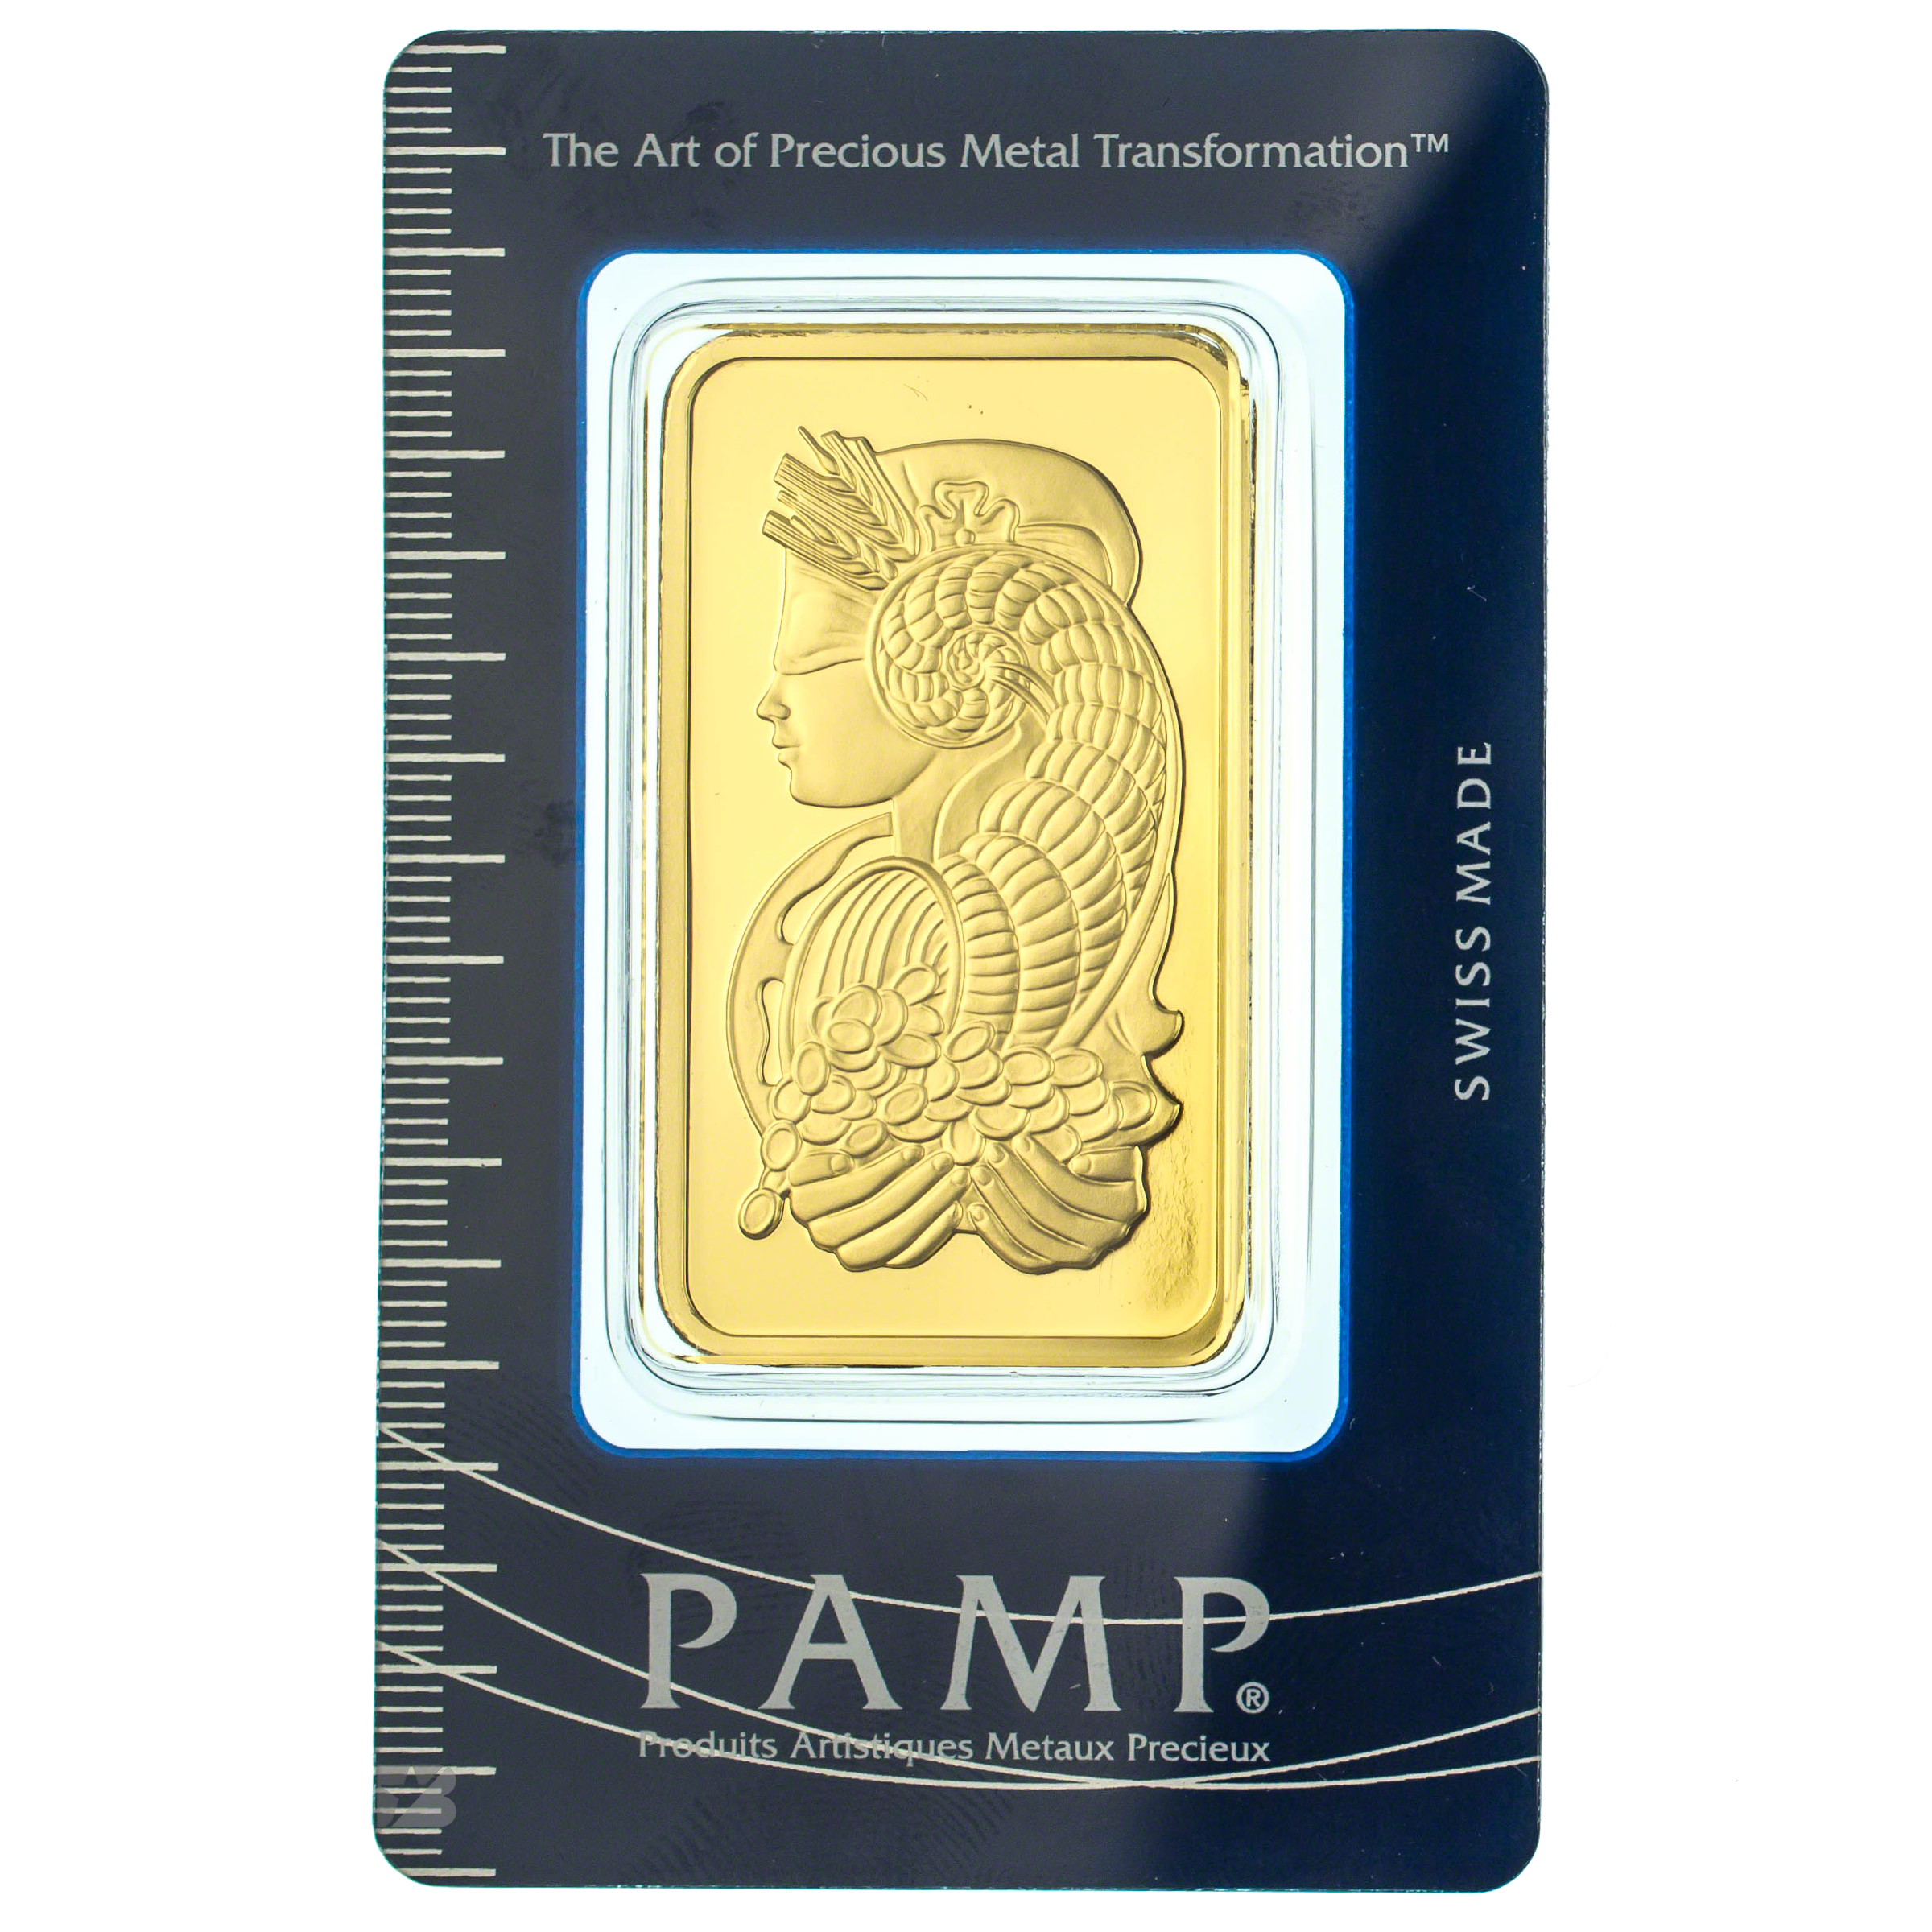 What Does Pamp Mean September 2019